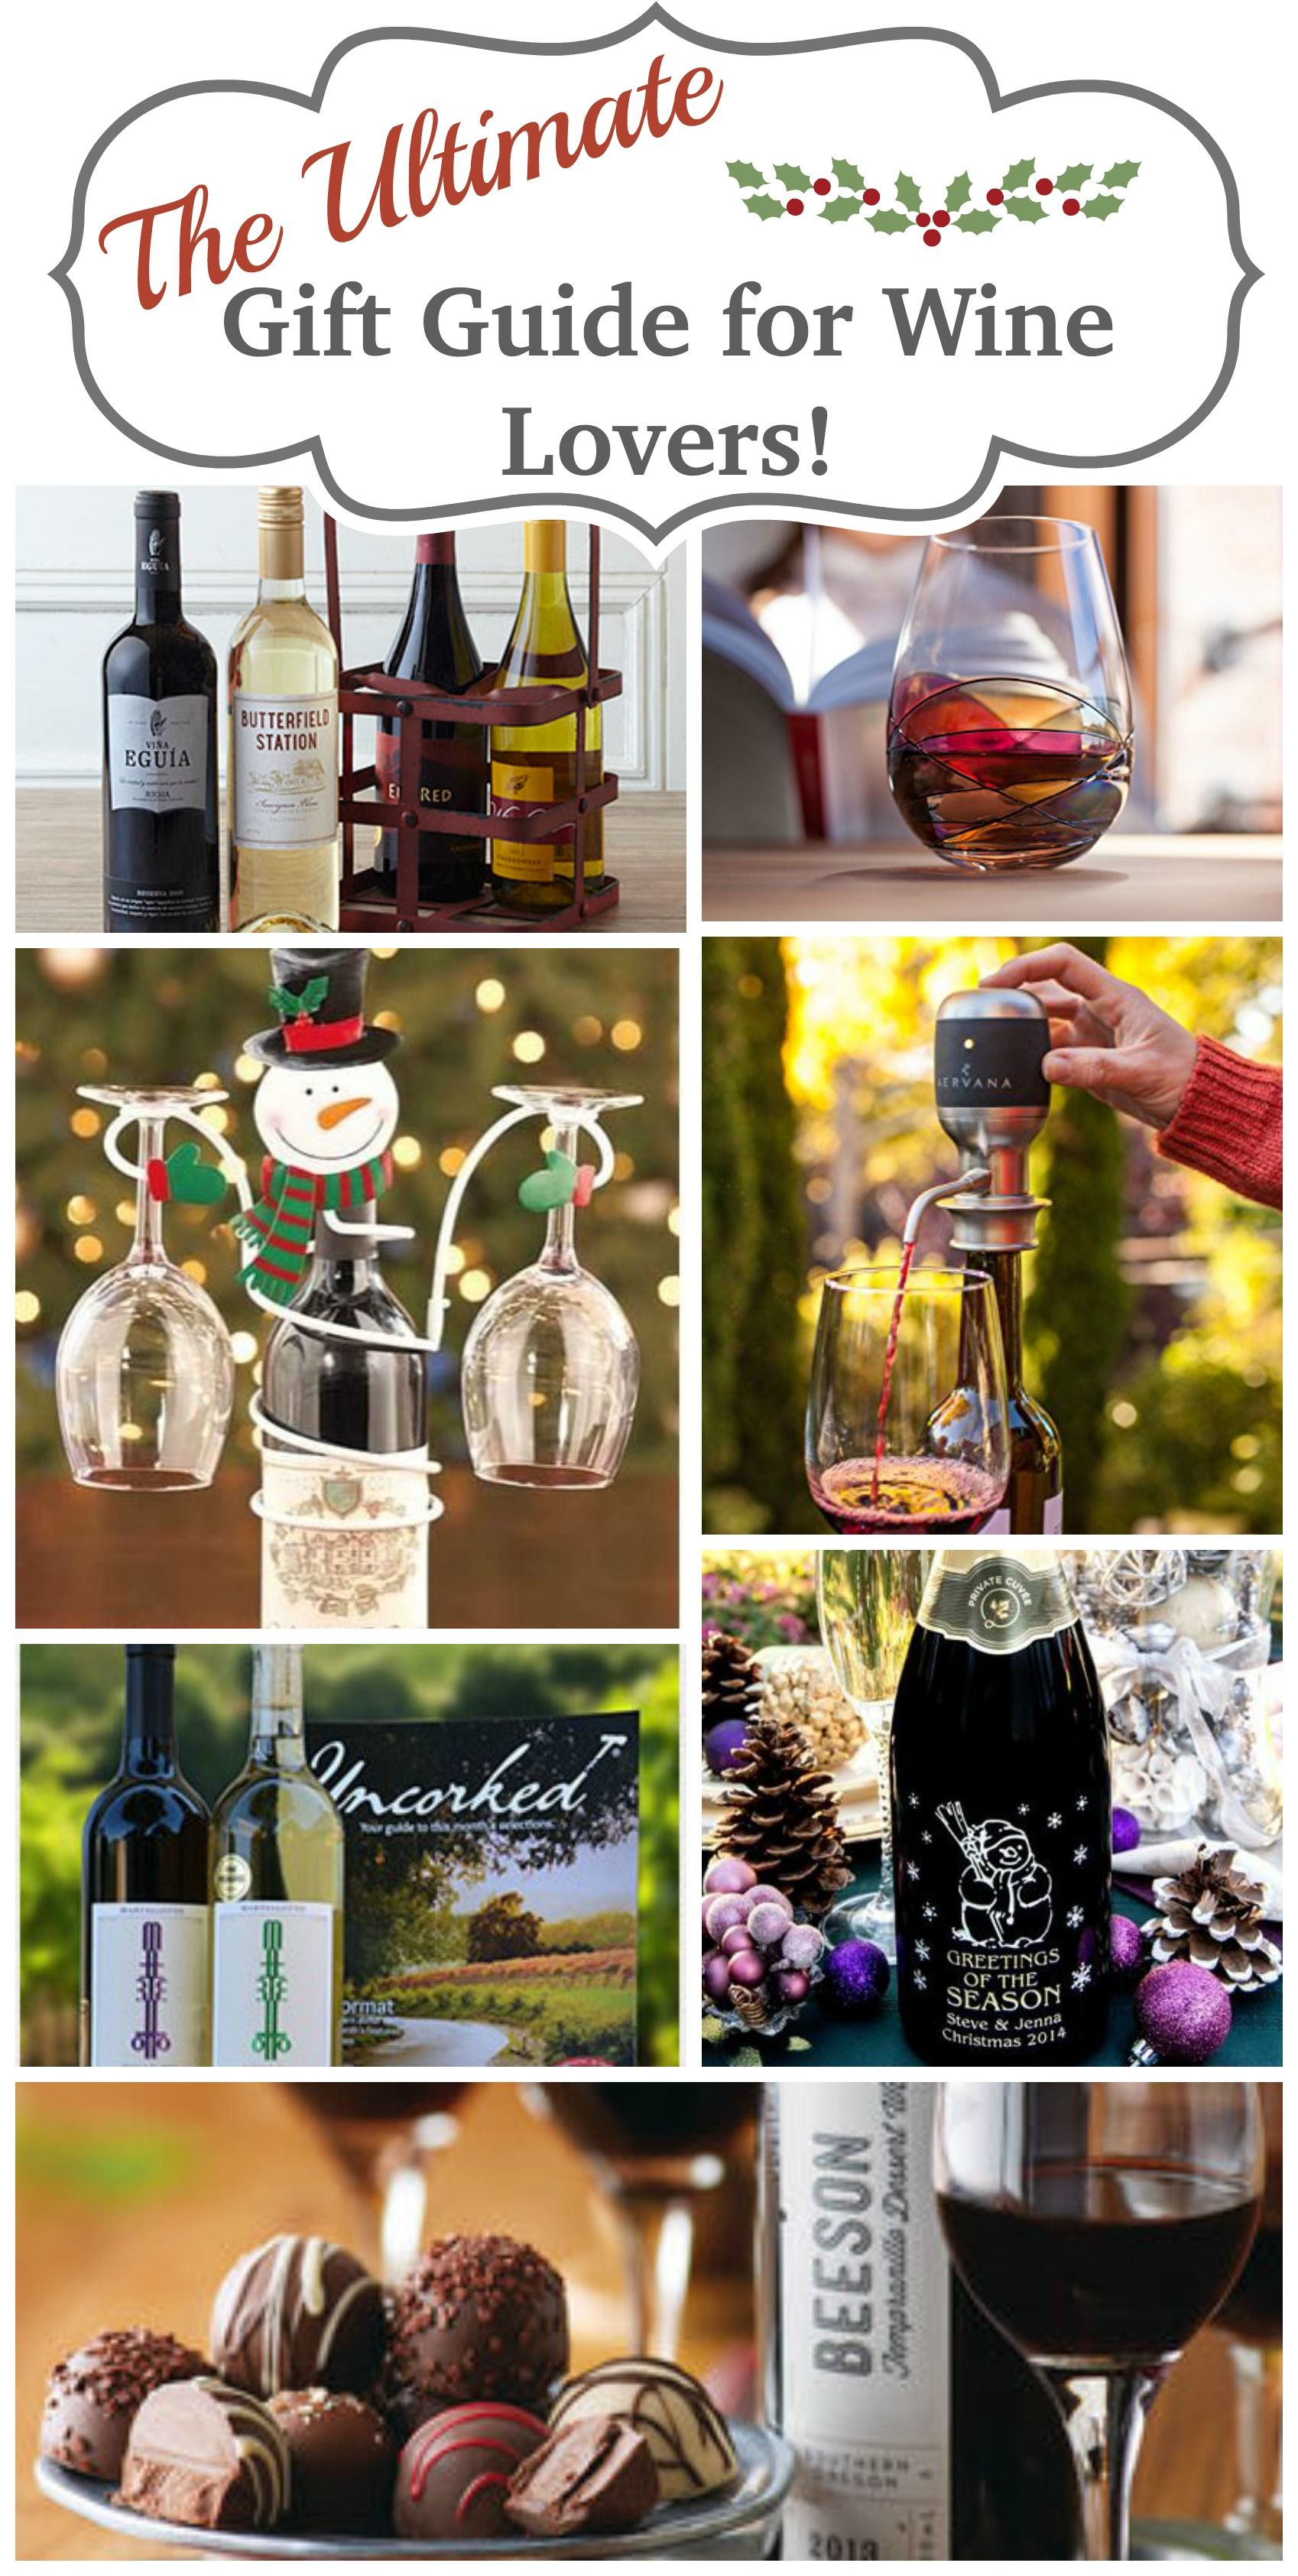 The Ultimate Gift Guide for Wine Lovers | Pinterest | Wine lover ...